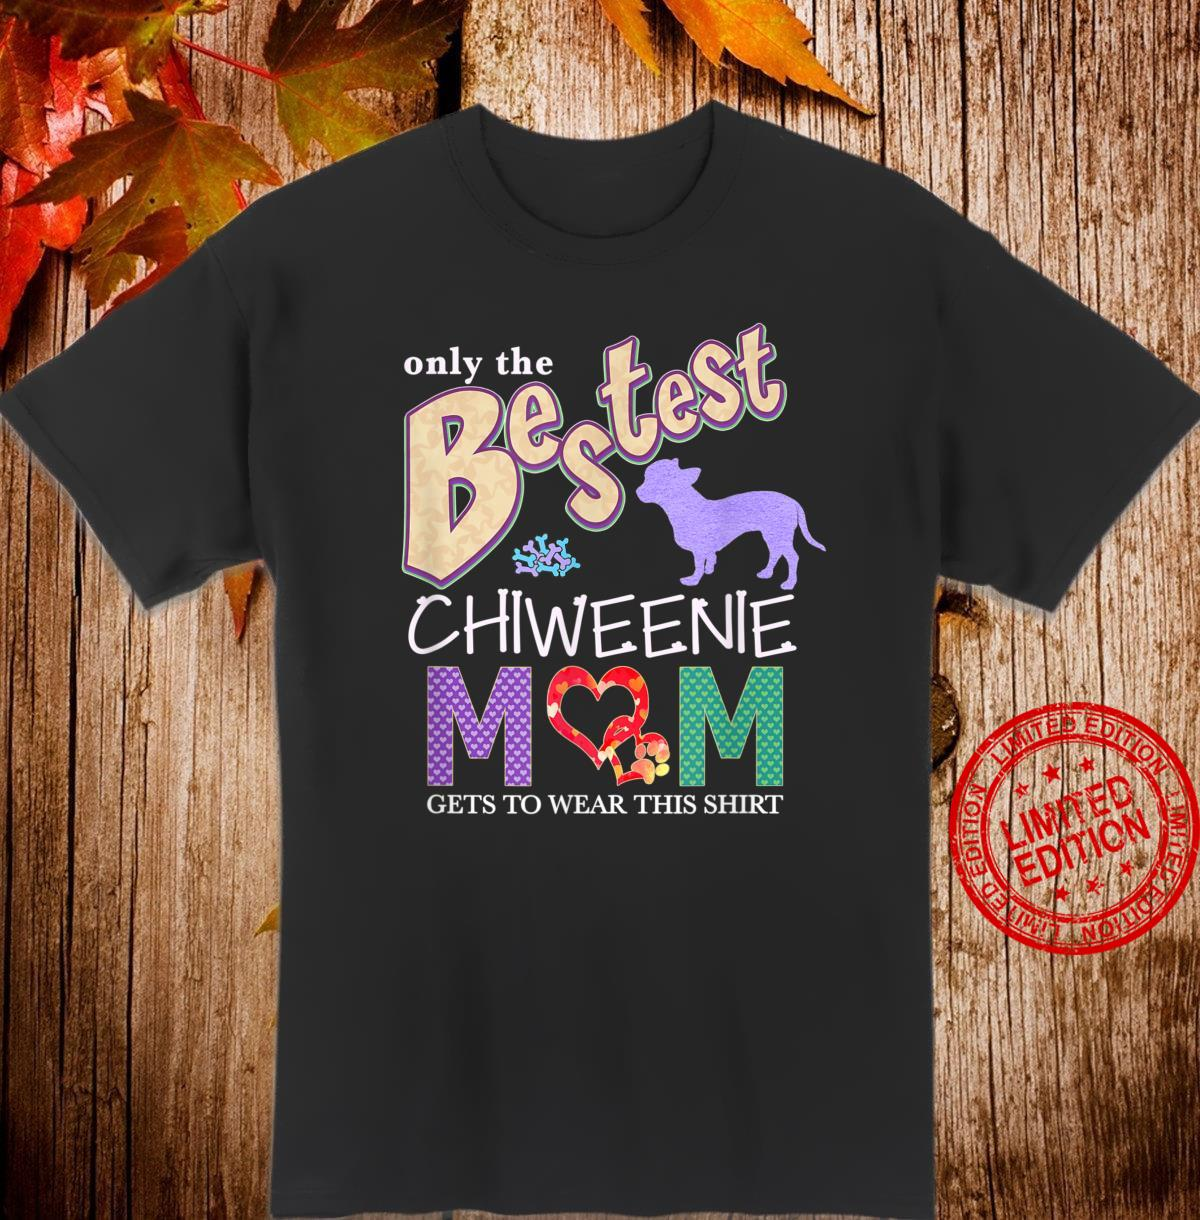 Chiweenie Shirt Design for Chiweenie Dogs Shirt